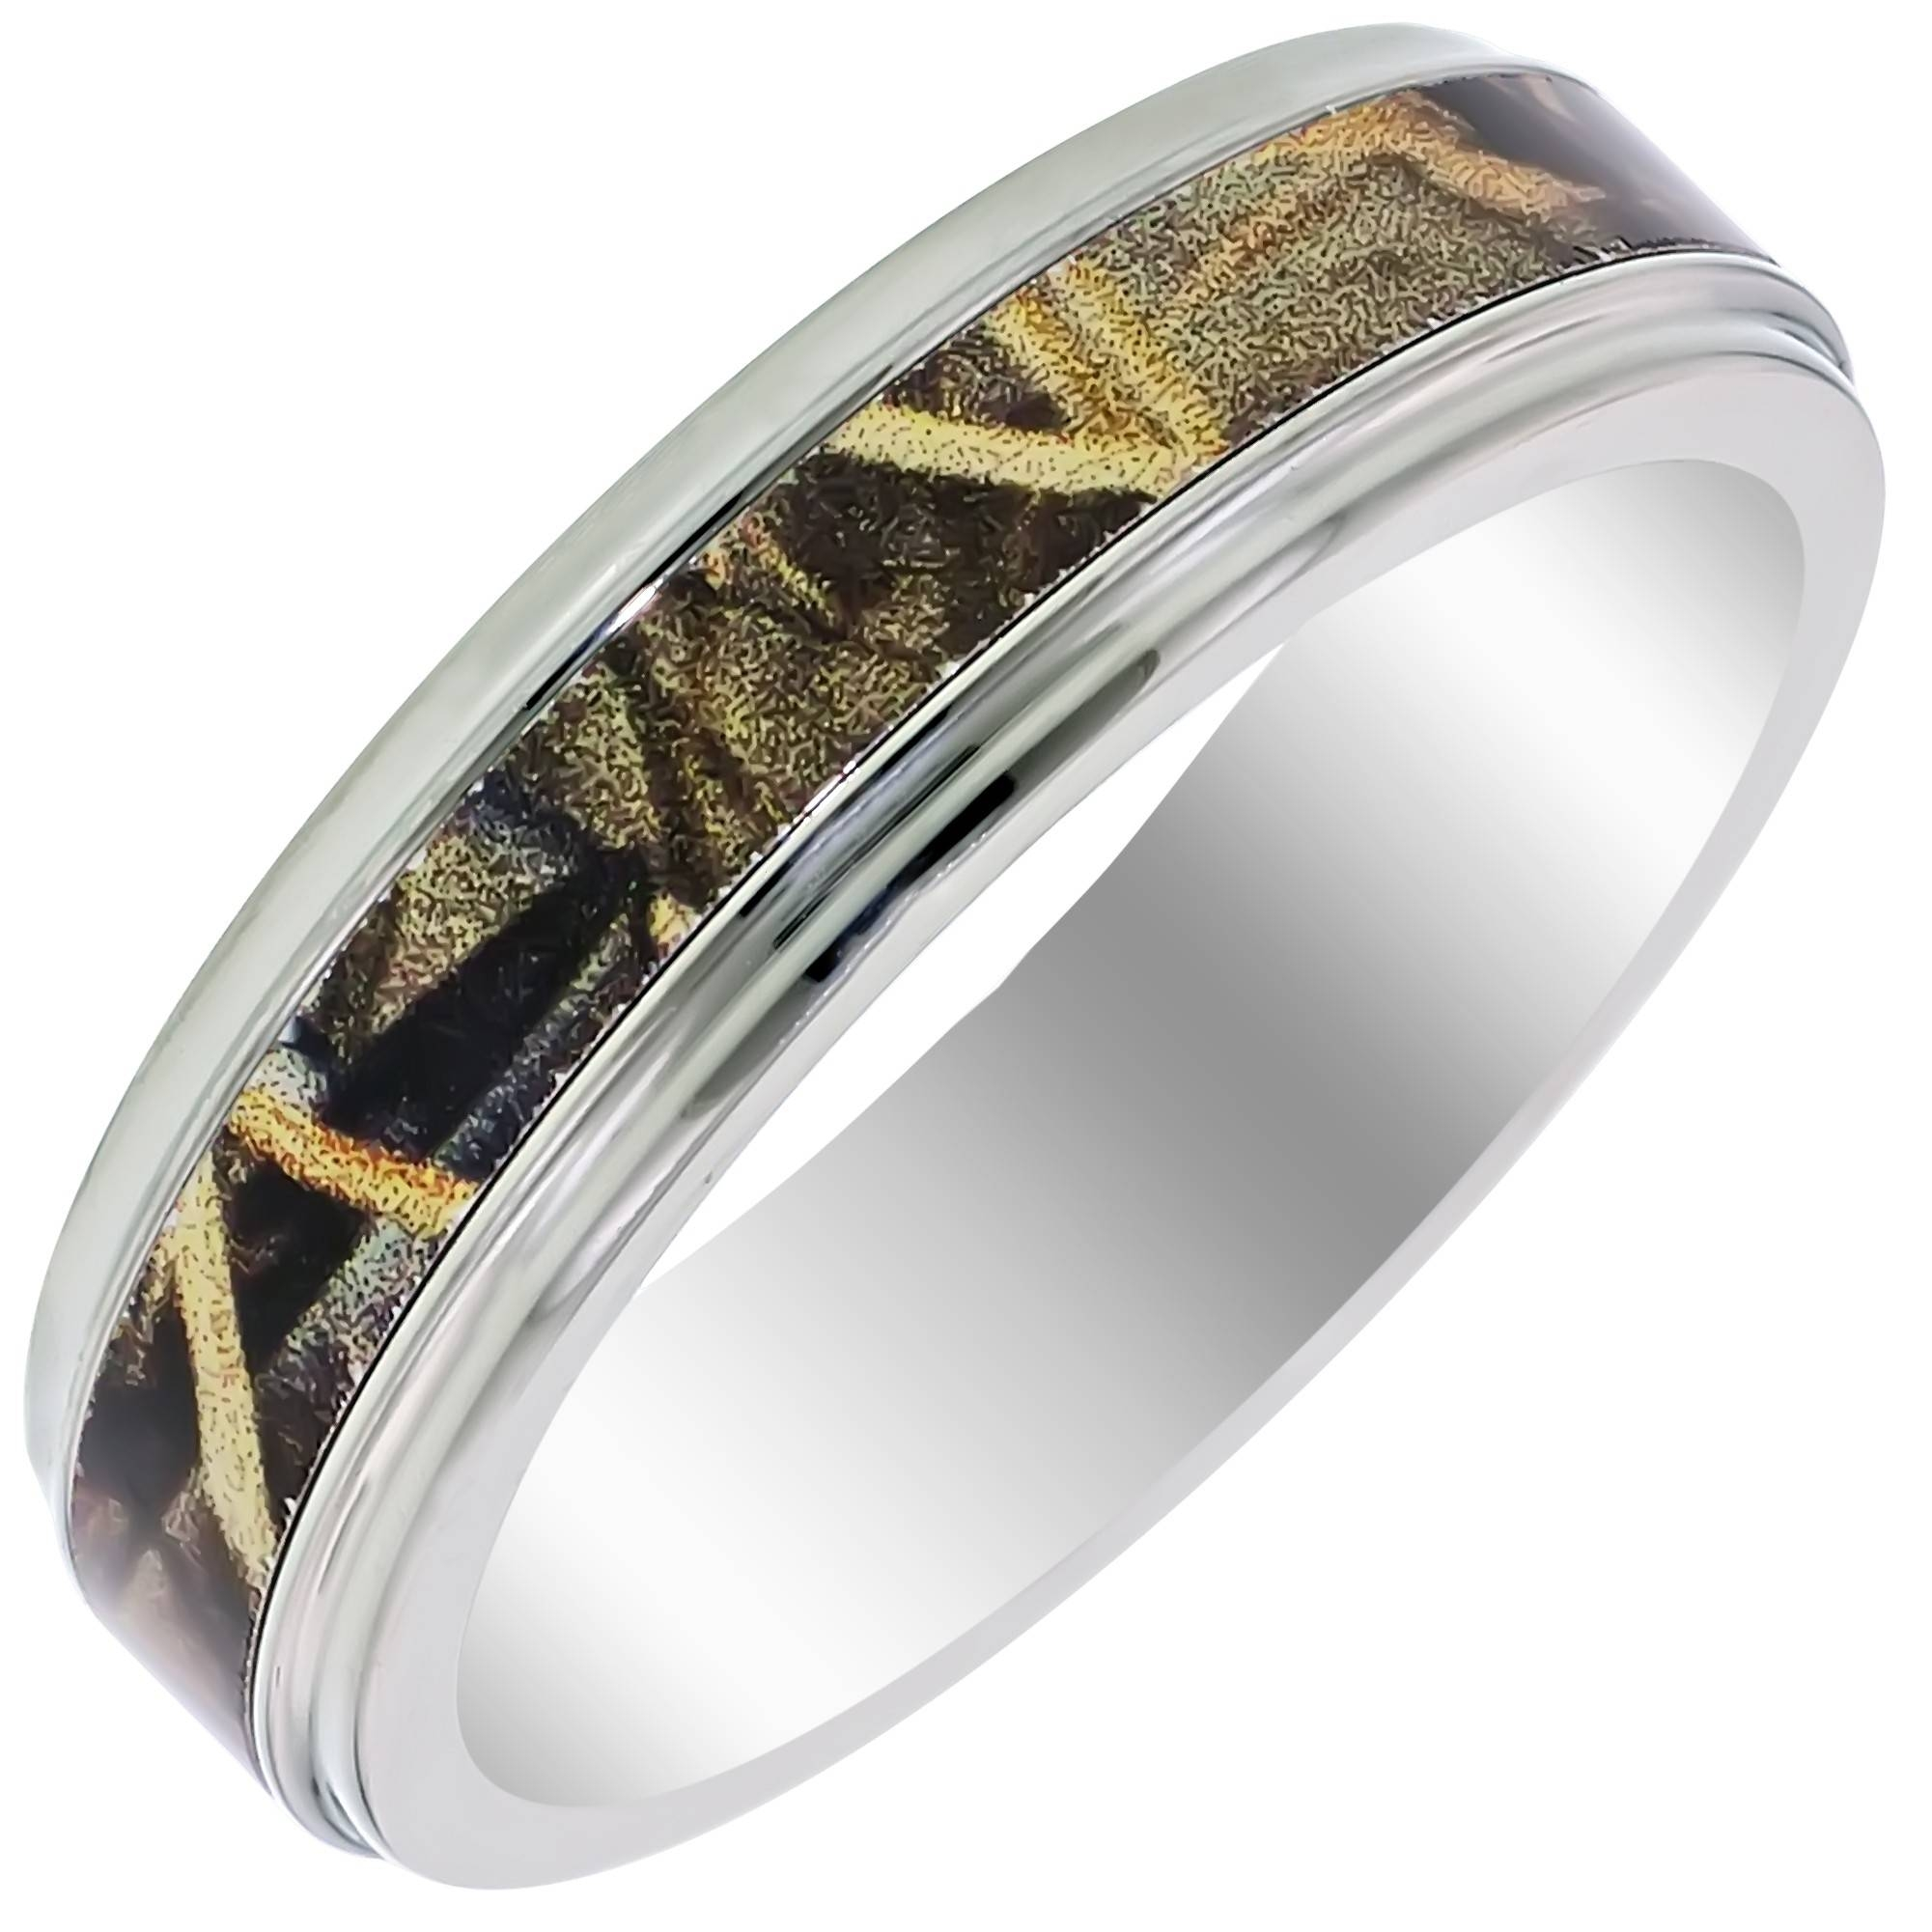 Camouflage Wedding Rings | Tomichbros Throughout Camo Wedding Bands For Her (View 6 of 15)